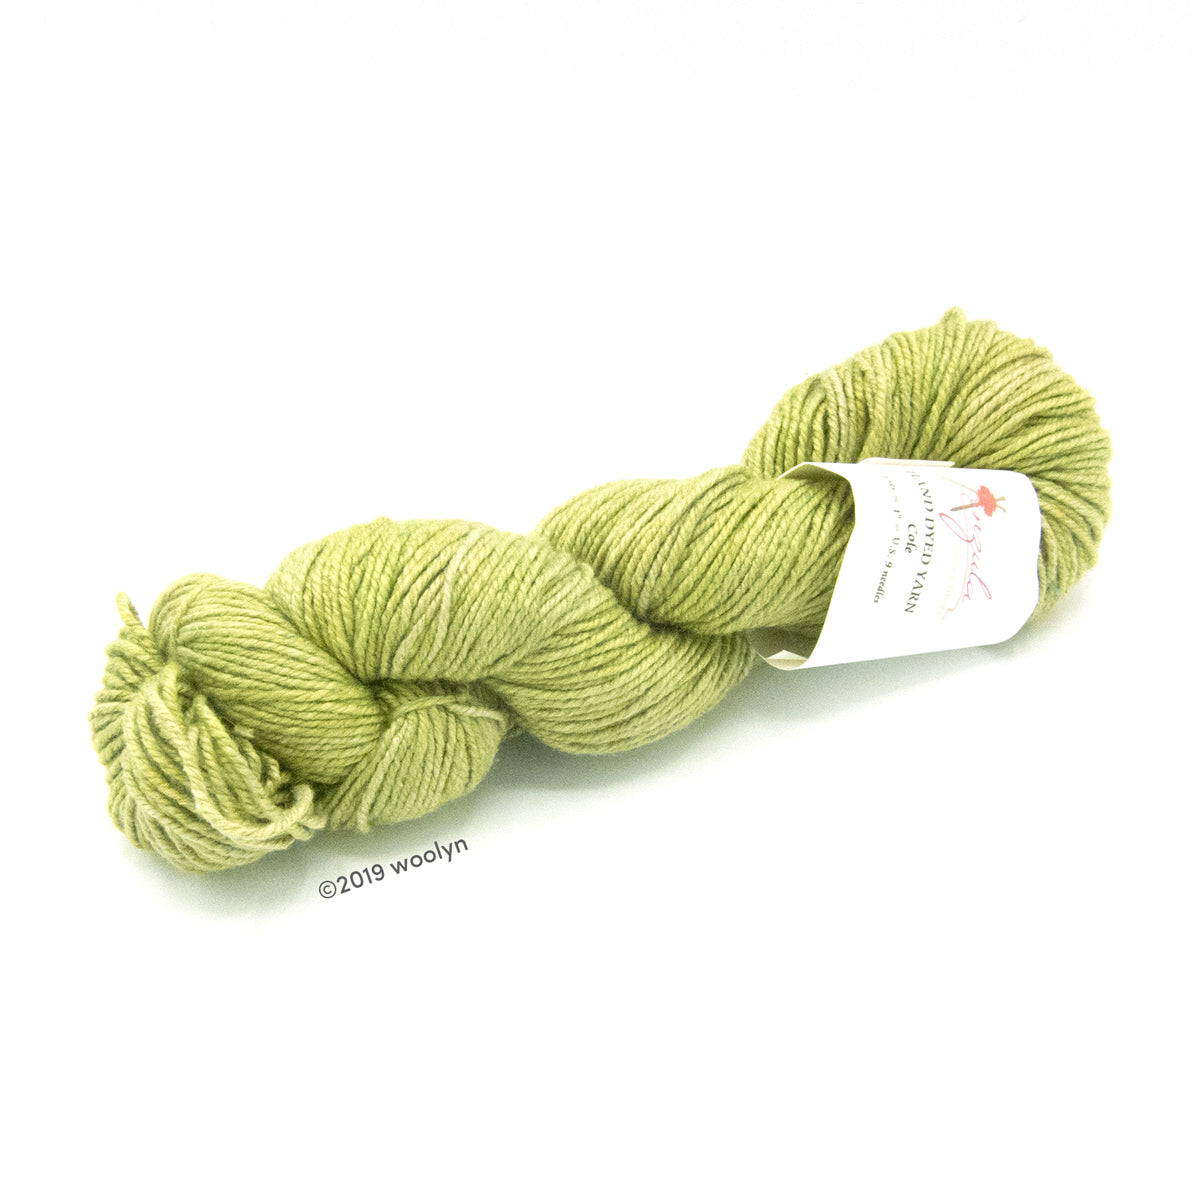 A twisted skein of Anzula Cole yarn in a bright yellow green.